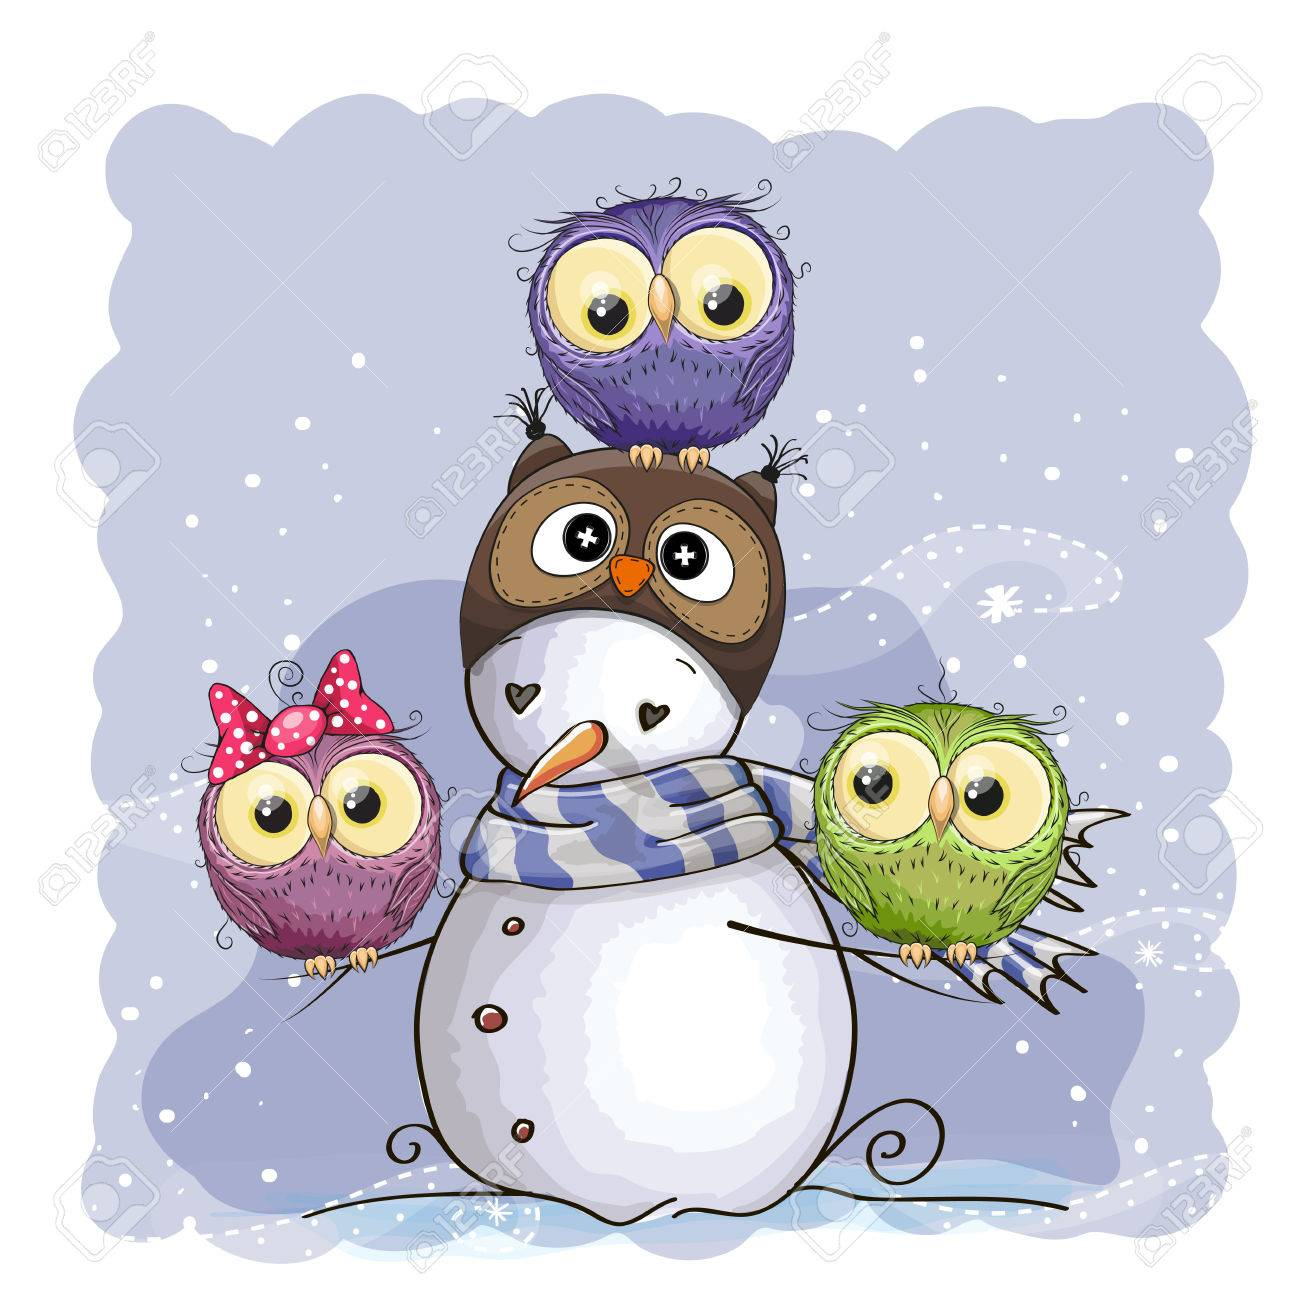 Cute Snowman in owl hat and three owls